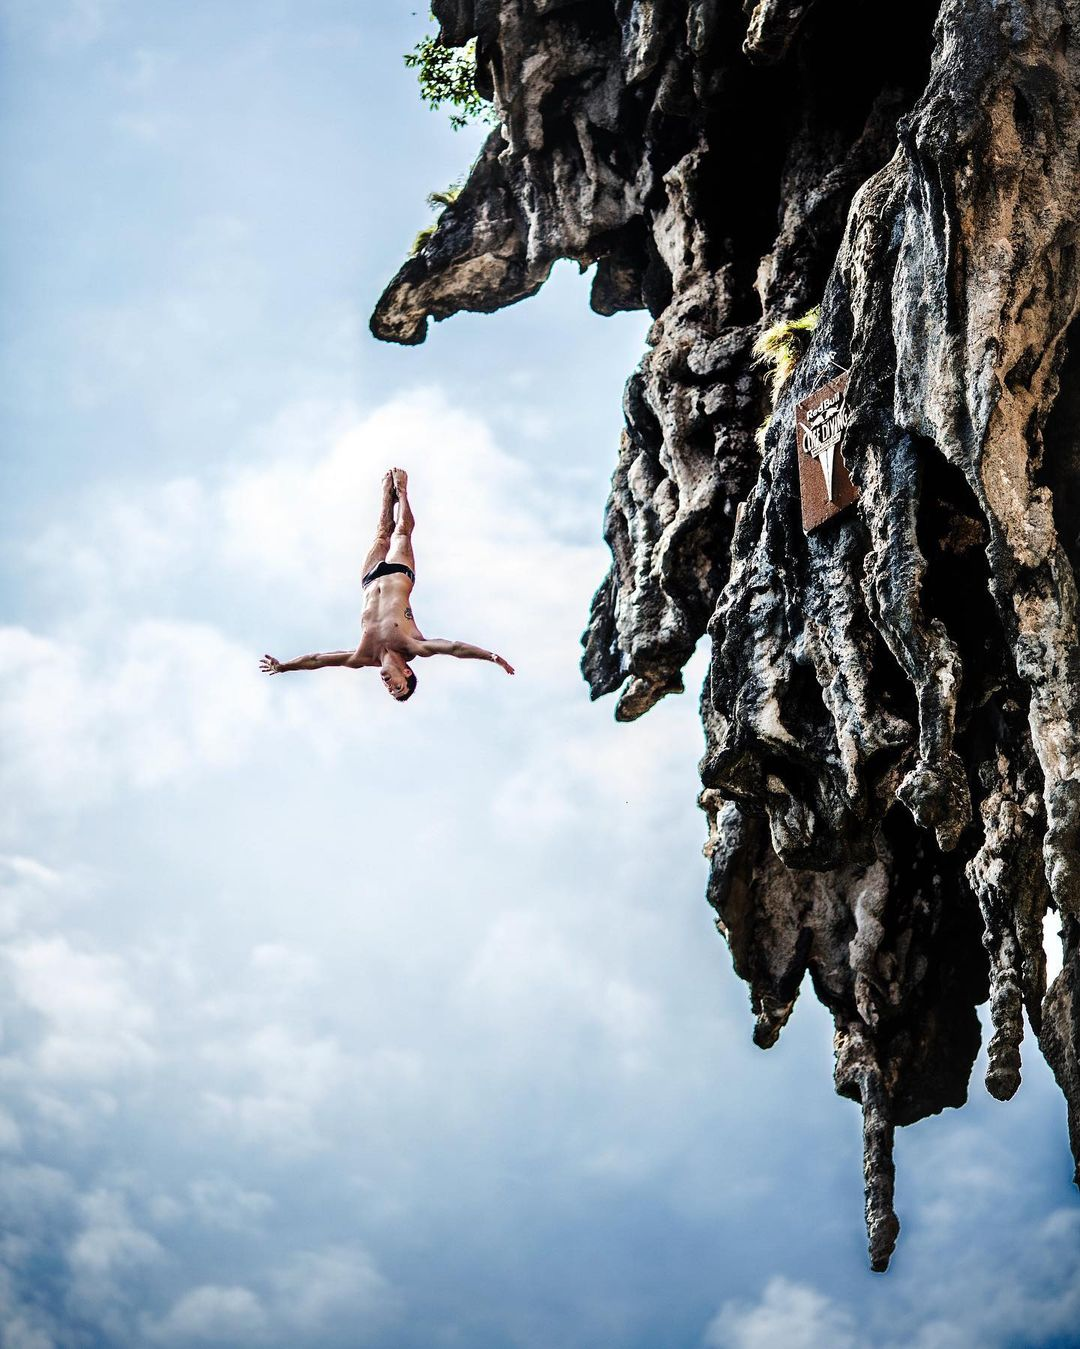 A man practicing cliff diving.